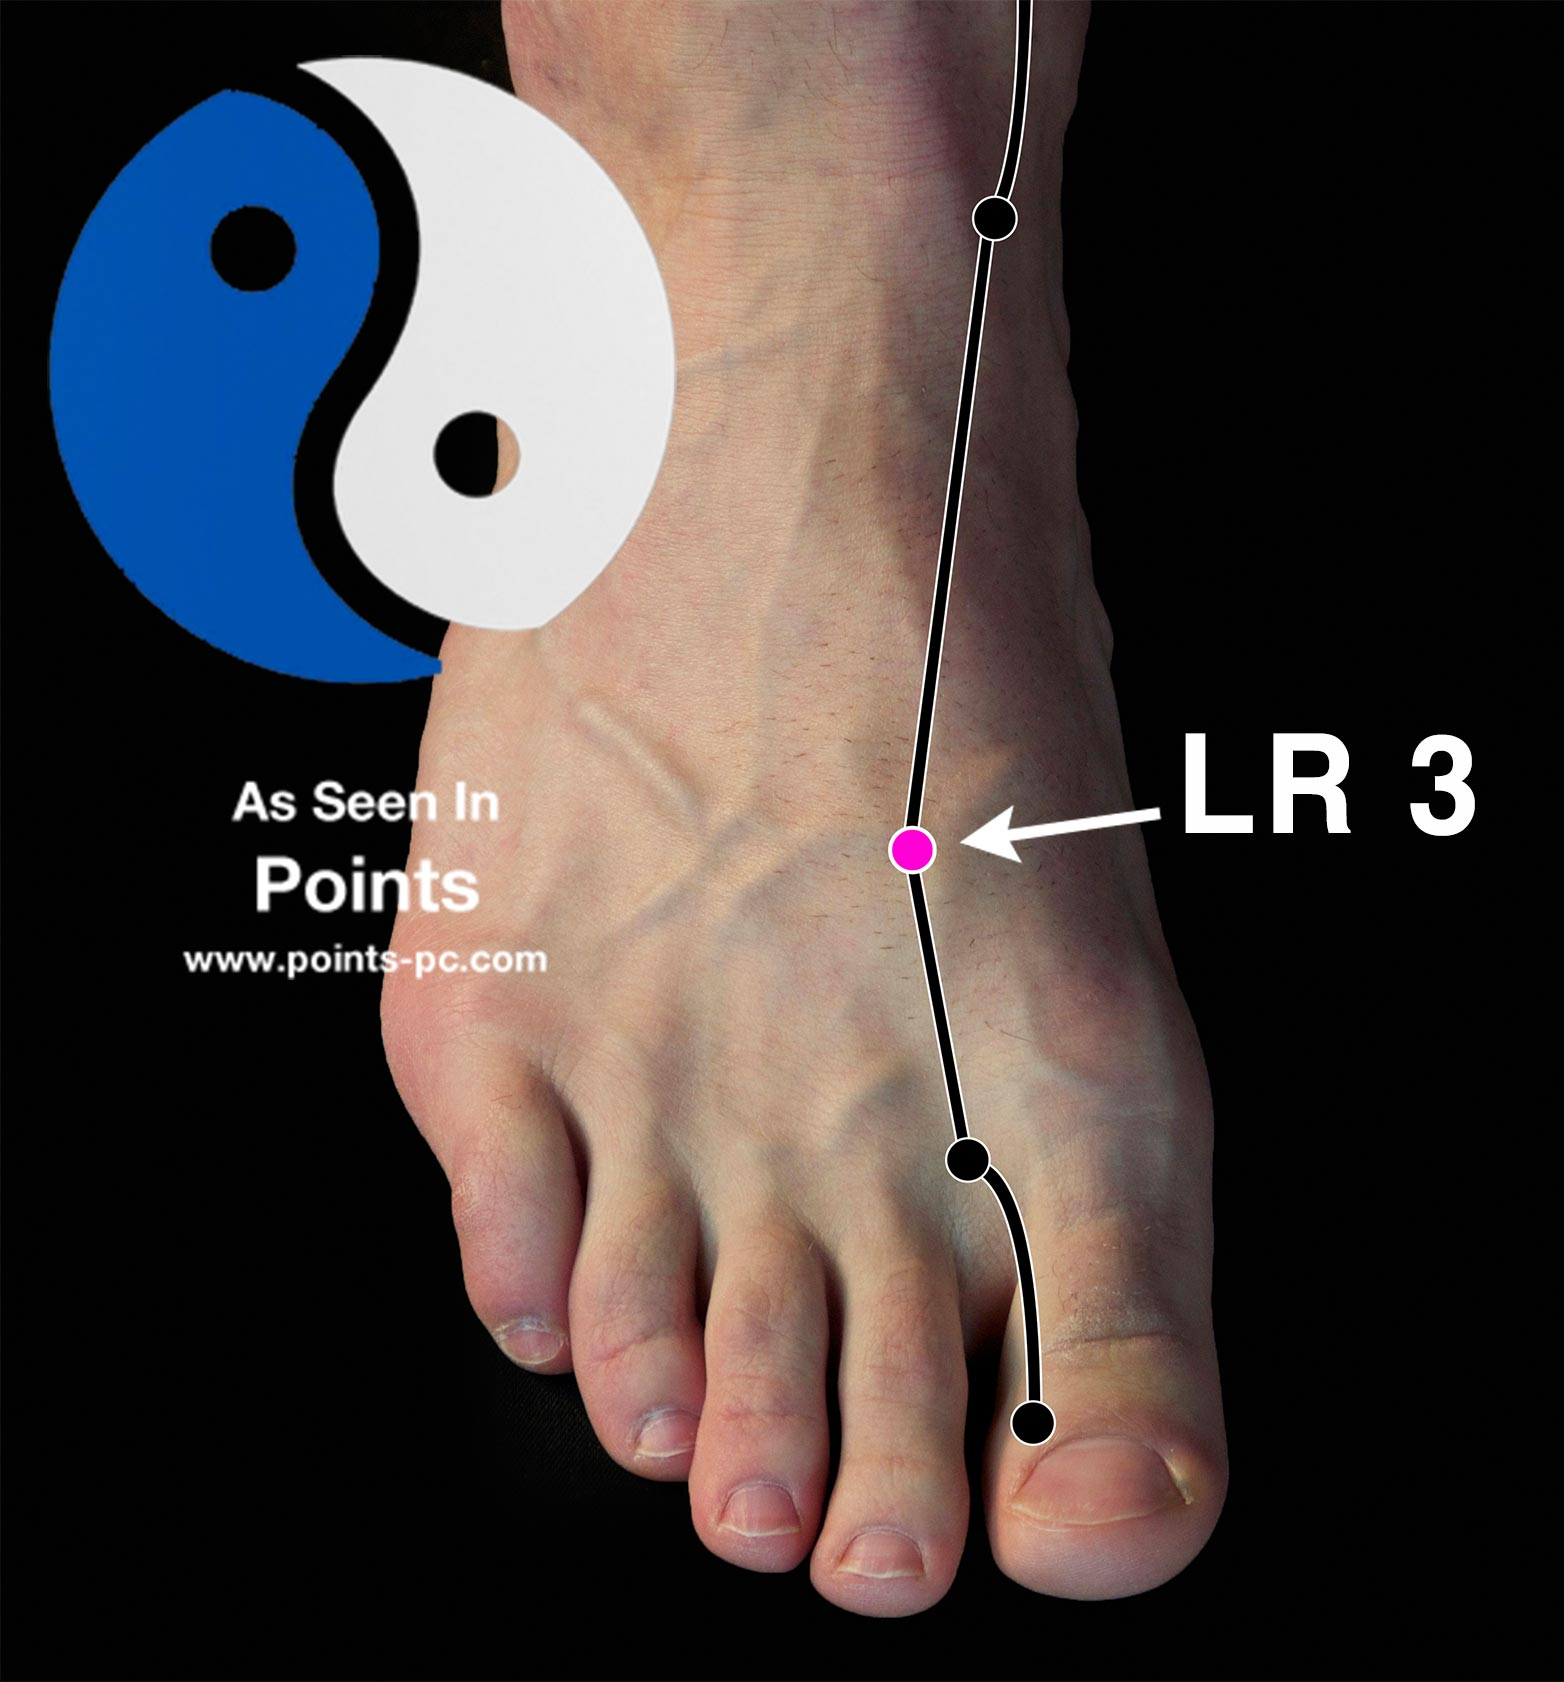 Acupuncture Point: Liver 3 - Acupuncture Technology News